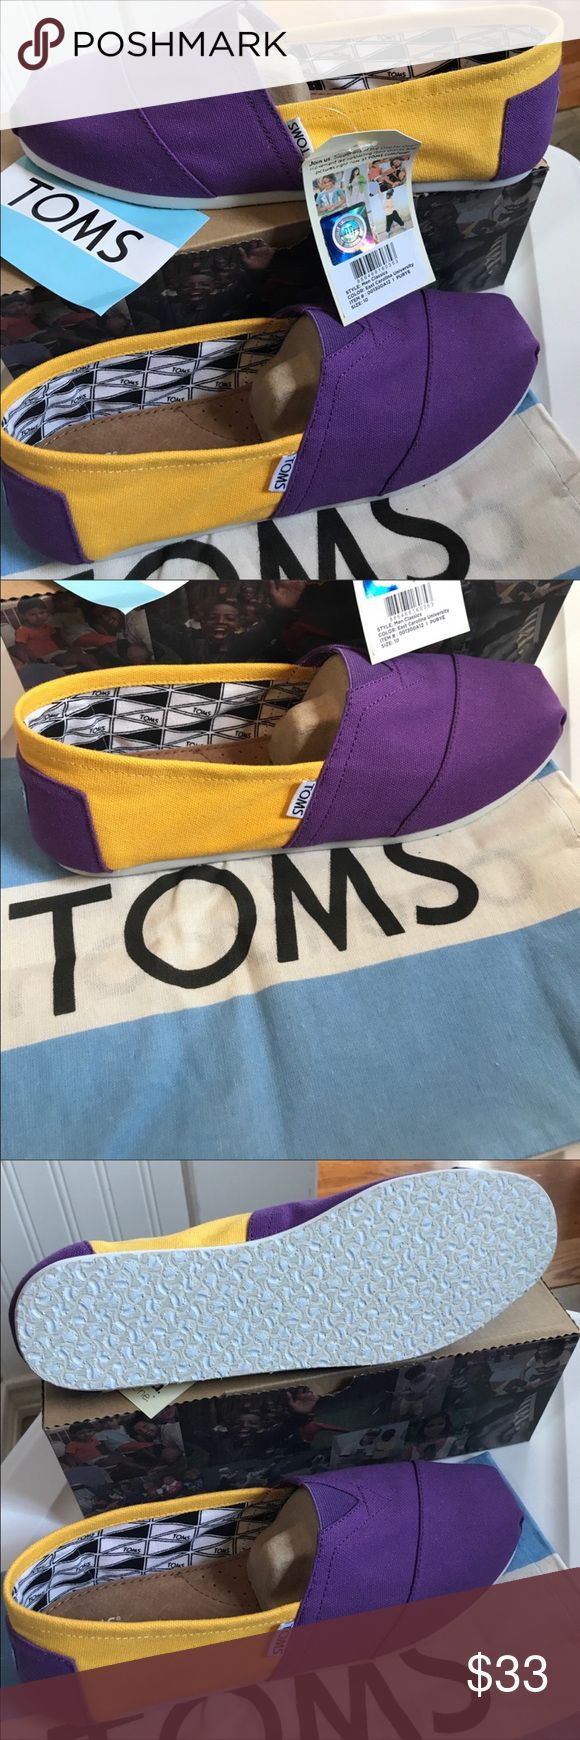 Classic Canvas TOMS, East Carolina University Classics Purple and gold very summery and crisp. New in box 📦  Light weight canvas slipons, the shoe that made TOMS famous! University of East Carolina University or other schools with Purple and gold. TOMS Shoes